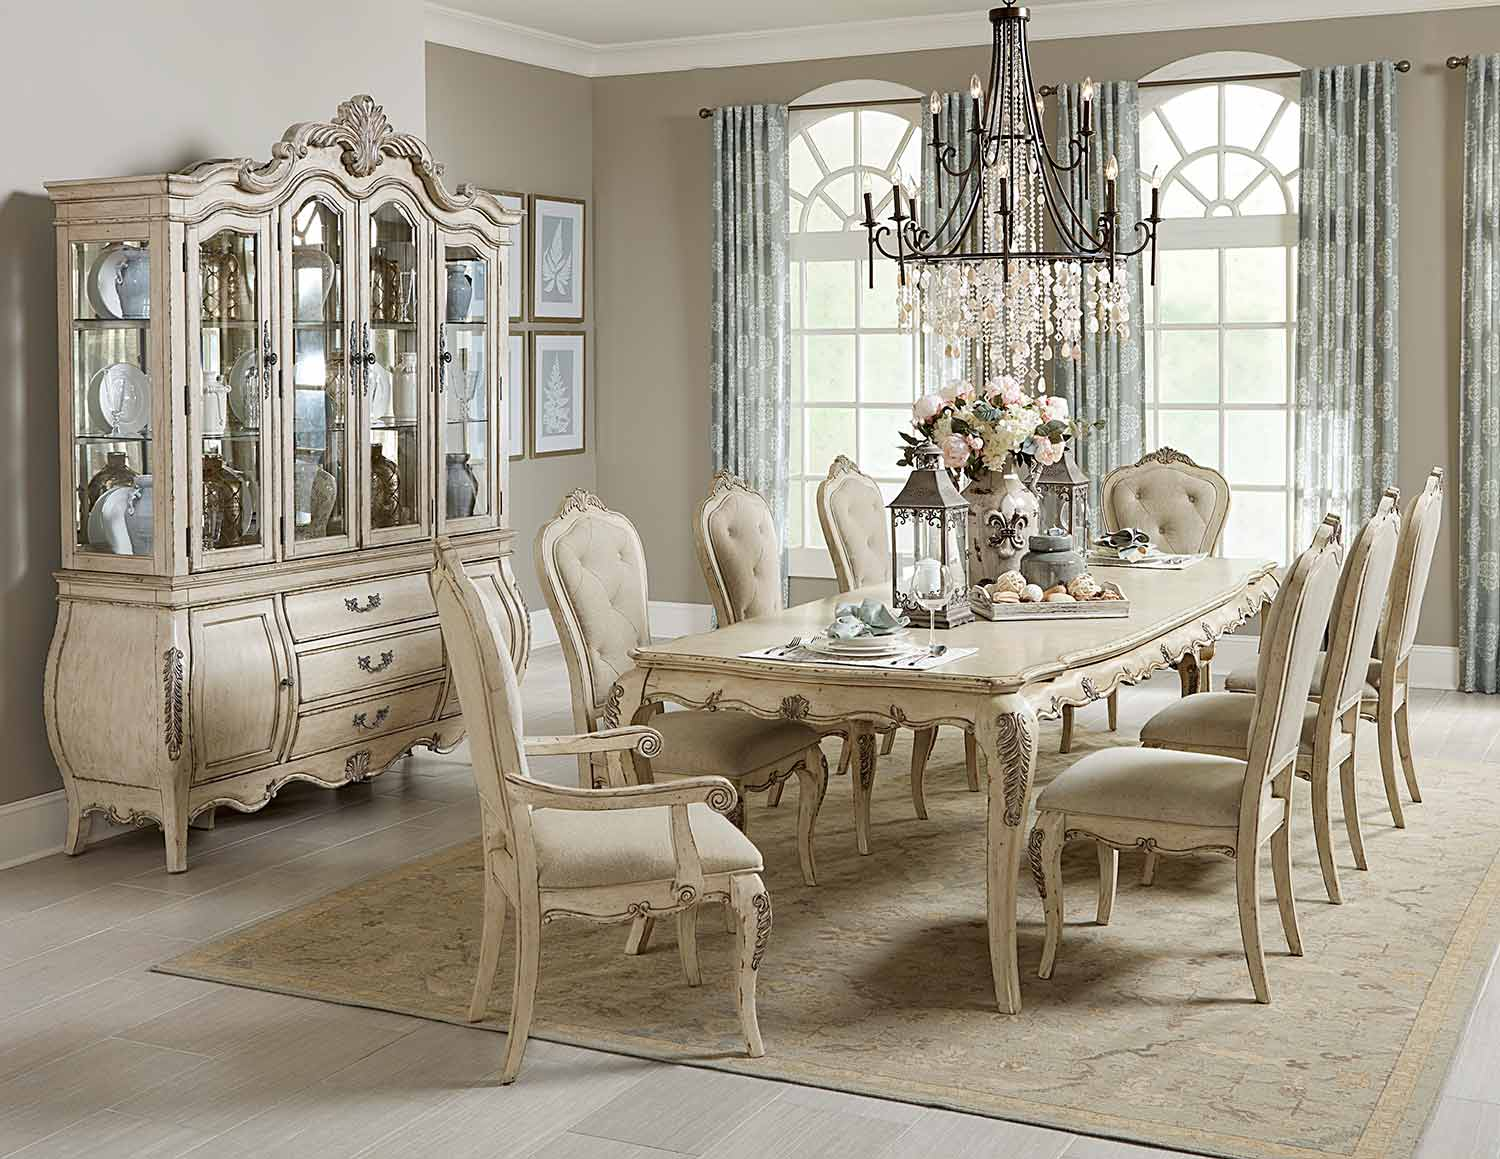 Homelegance Elsmere Dining Set - Antique Grey